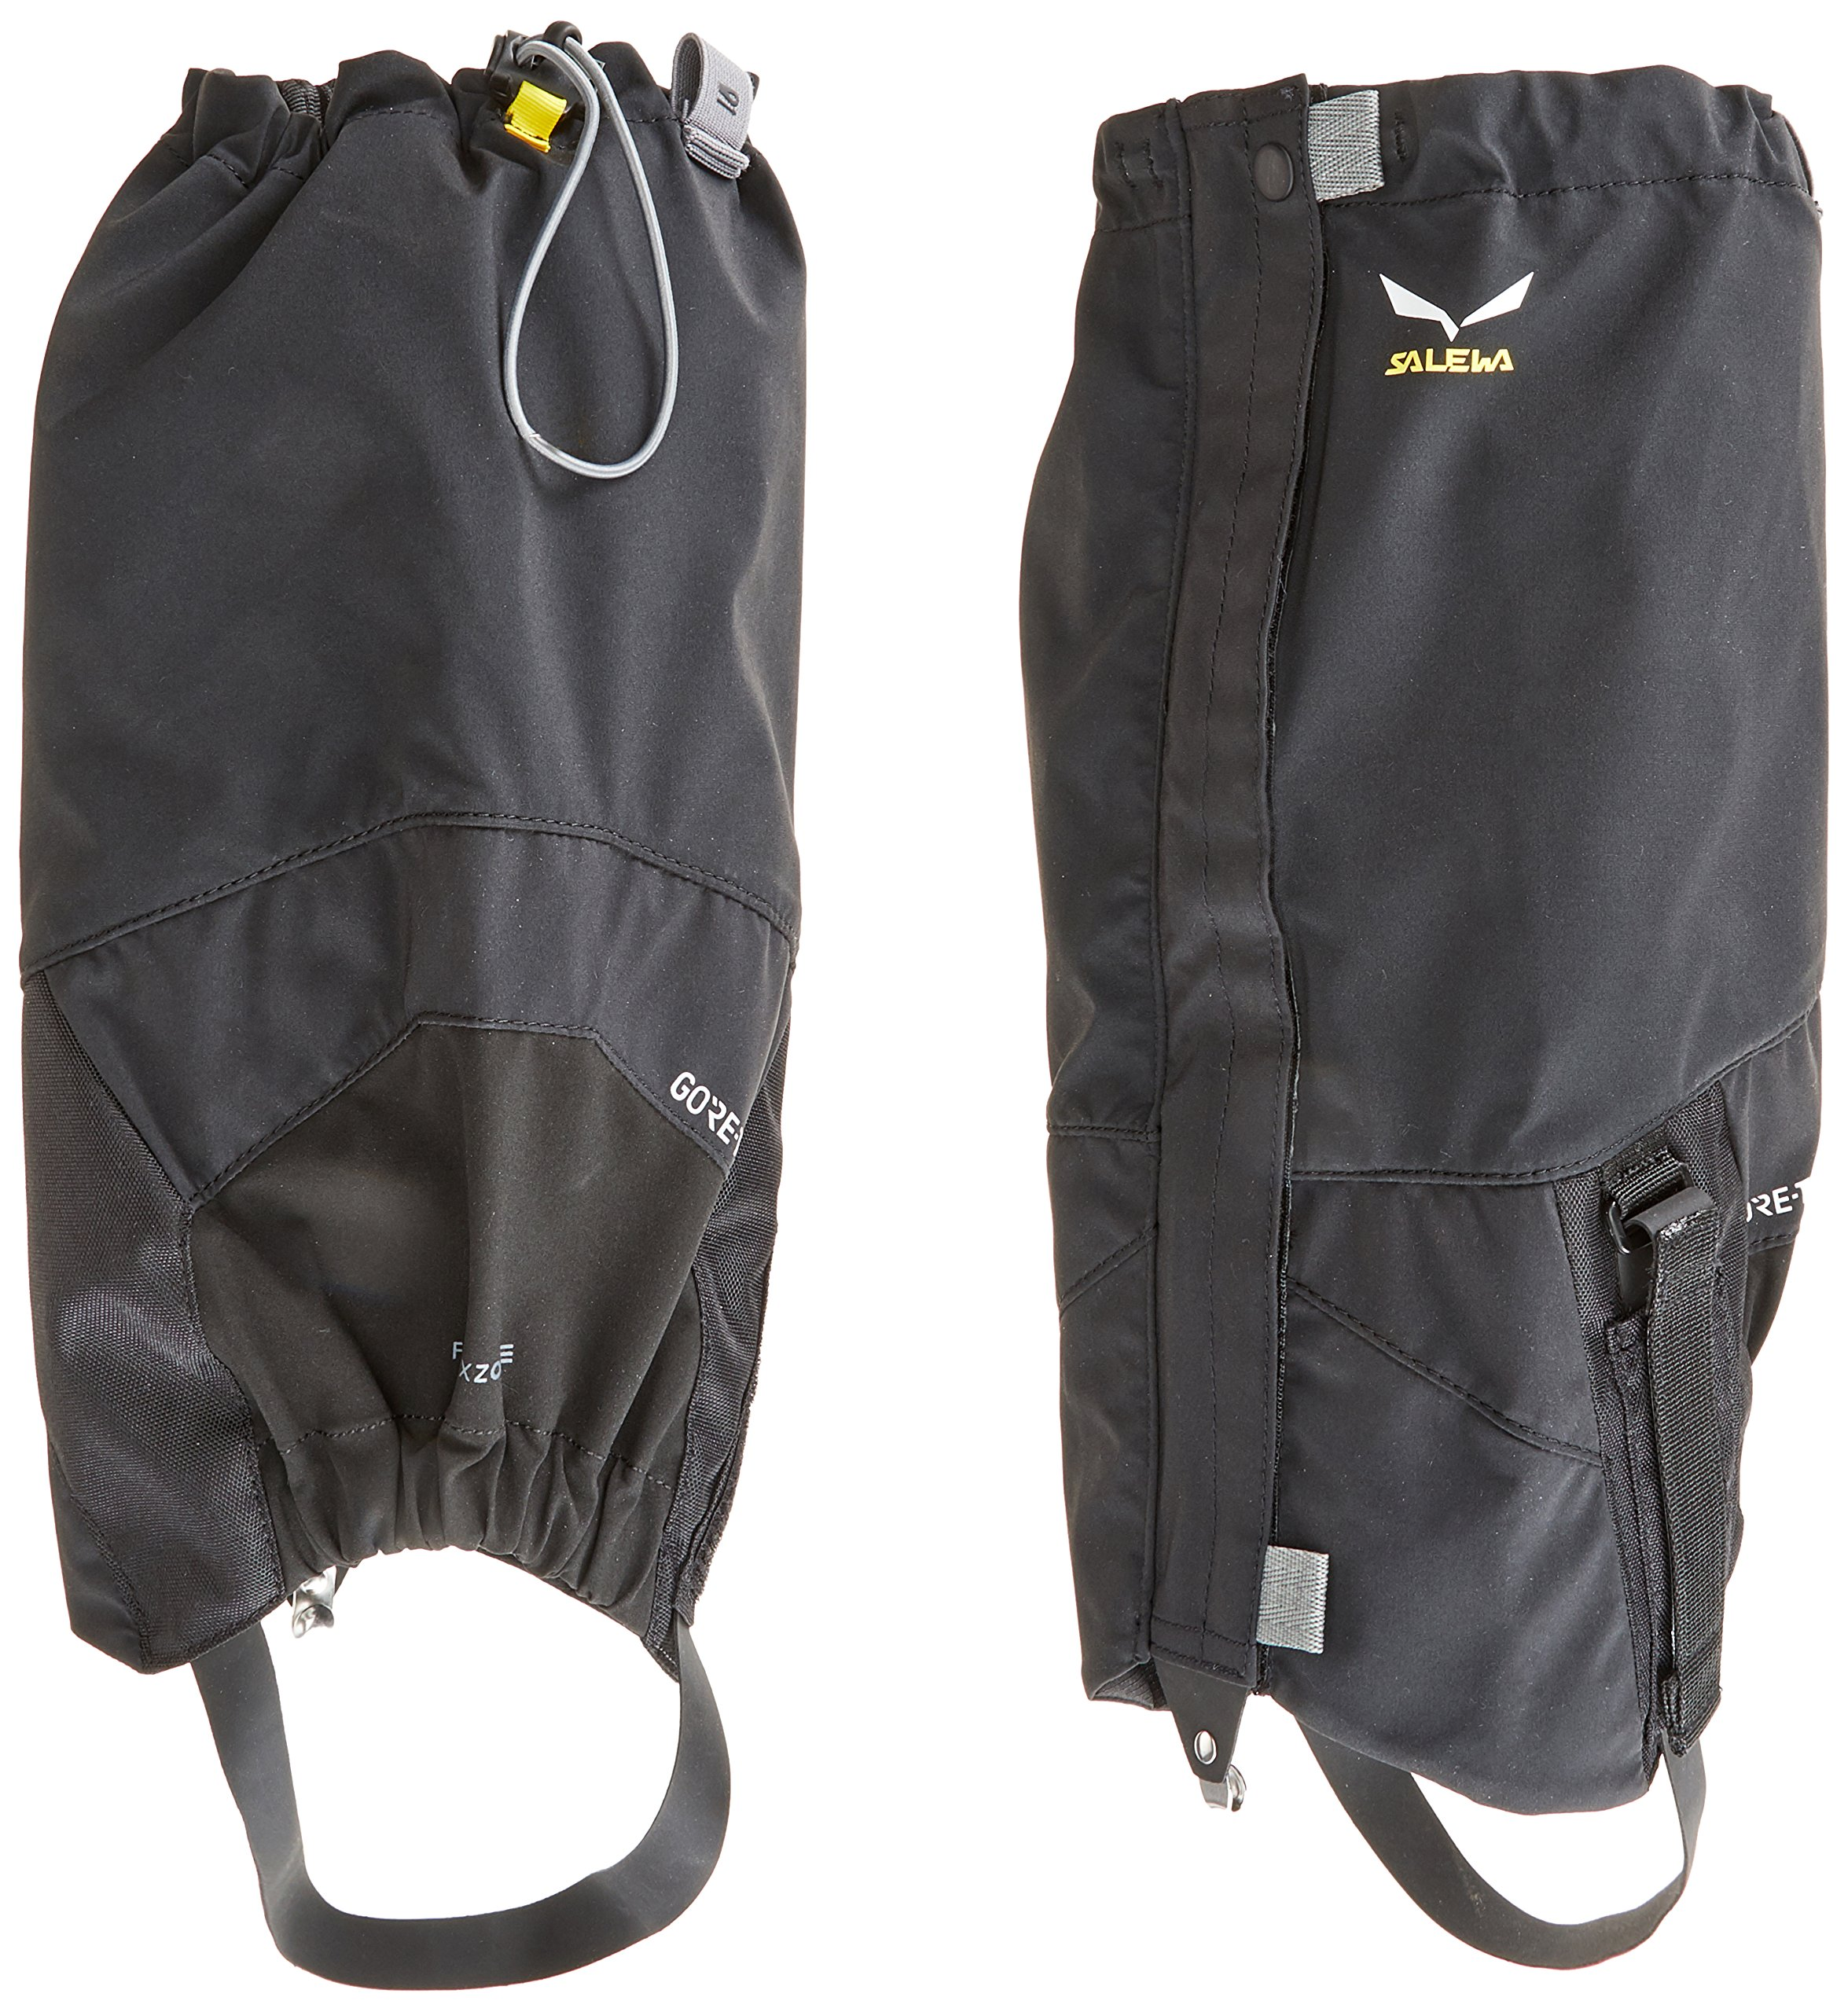 Salewa Protection Adult Boots GTX Gaiter